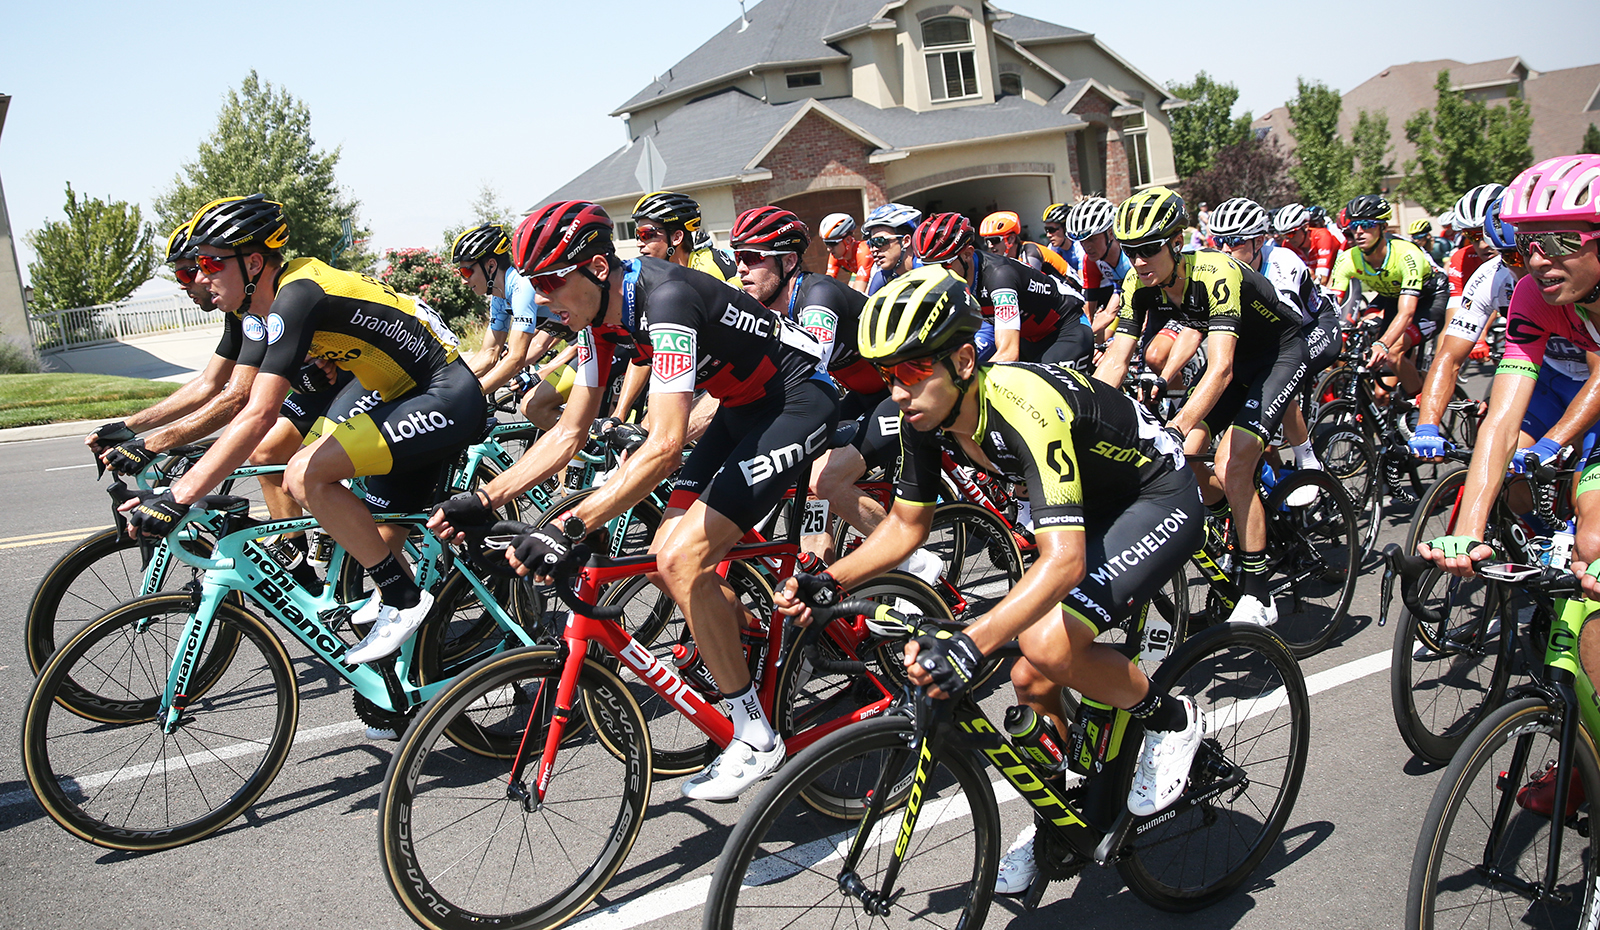 Peloton rides up the neighbourhood.  2018 Tour of Utah Stage 3, August 8, 2018, Layton, Utah. Photo by Cathy Fegan-Kim, cottonsoxphotography.net